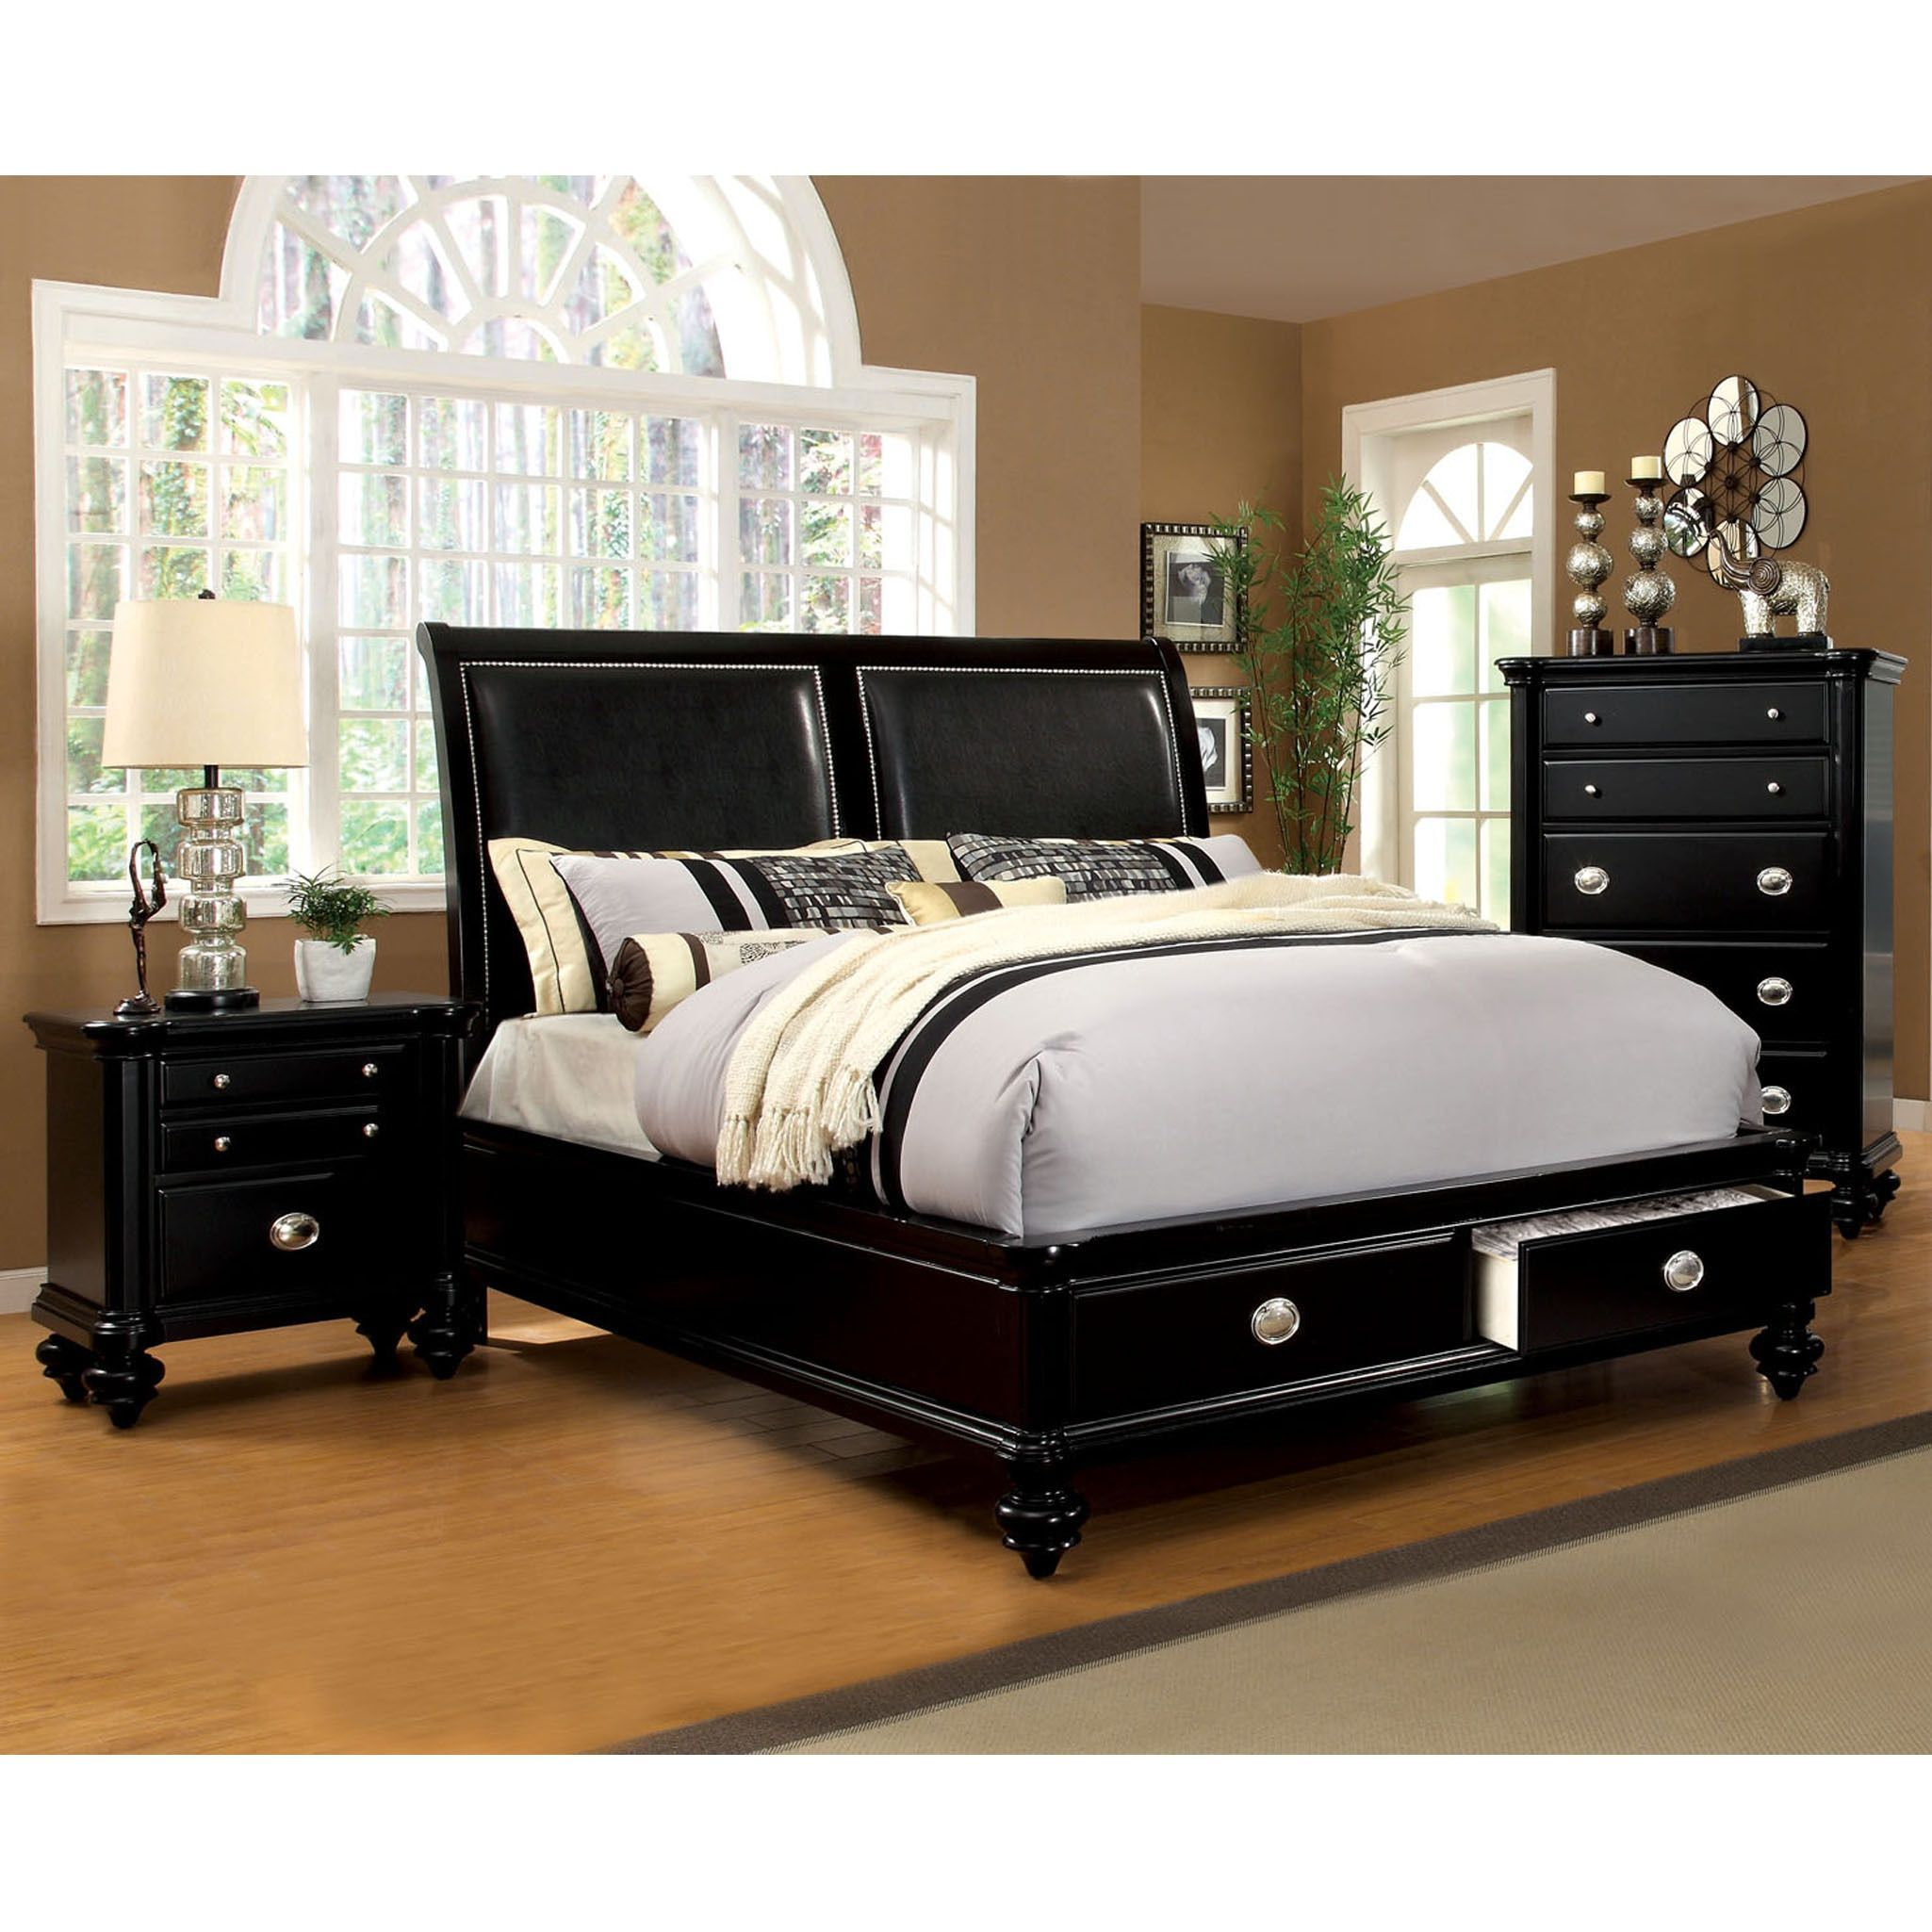 Furniture of america modern platform bed with drawers queen grey